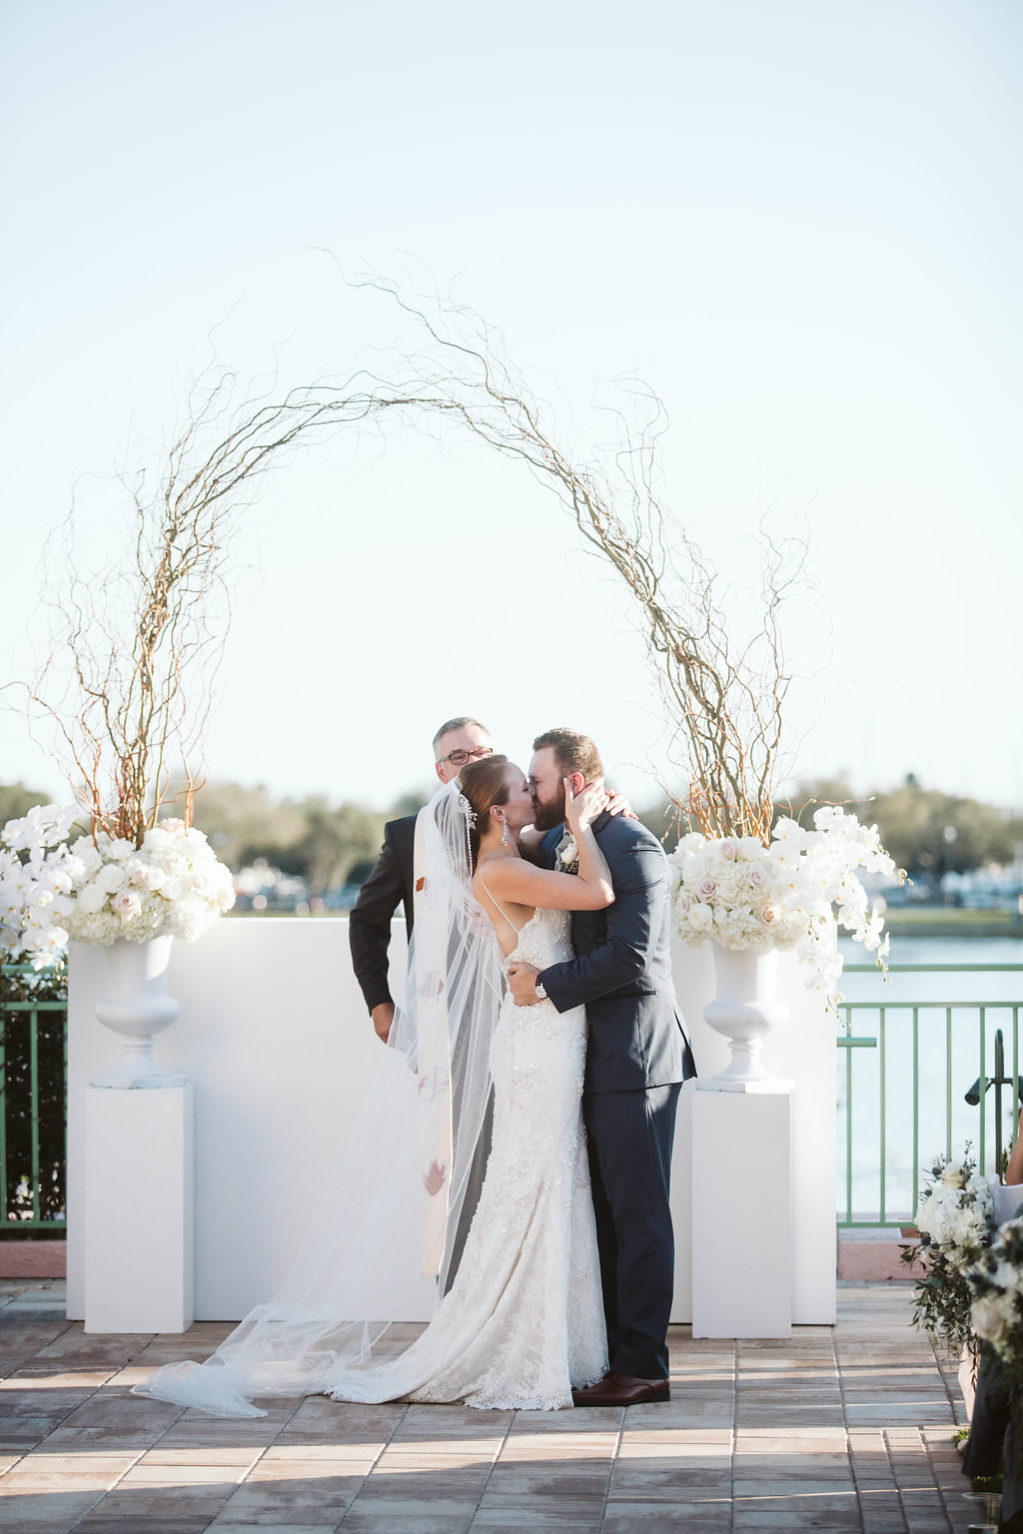 Outdoor Lawn Florida Wedding Ceremony with manzanita branches arch decor and white flowers | Historic Downtown Hotel Venue St. Pete Vinoy Renaissance | Tampa Bay Planner Parties a la Carte